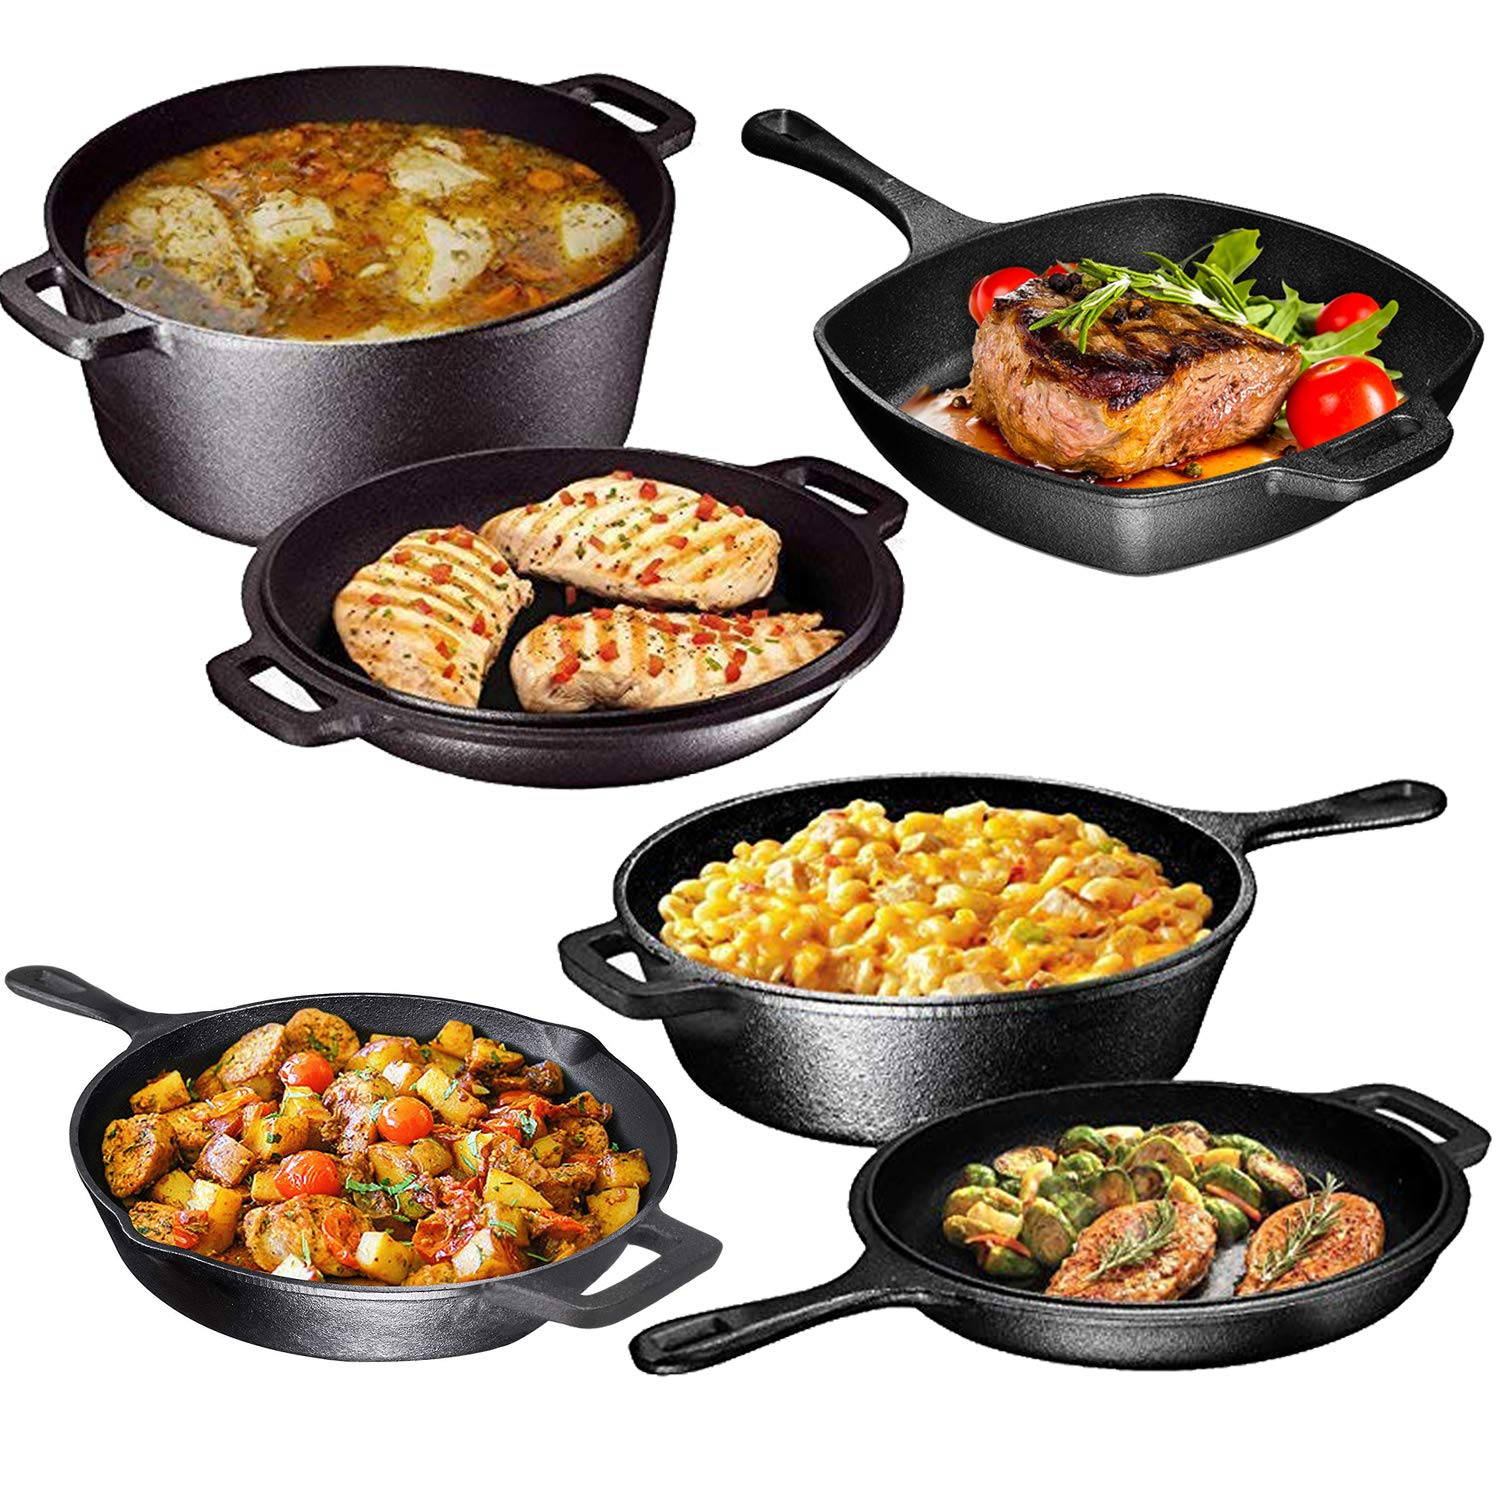 Pre Seasoned Cast Iron 6 Piece Bundle Gift Set, Double Dutch, Multi Cooker, Skillet & Square Grill Pan, Camping Cookware Set